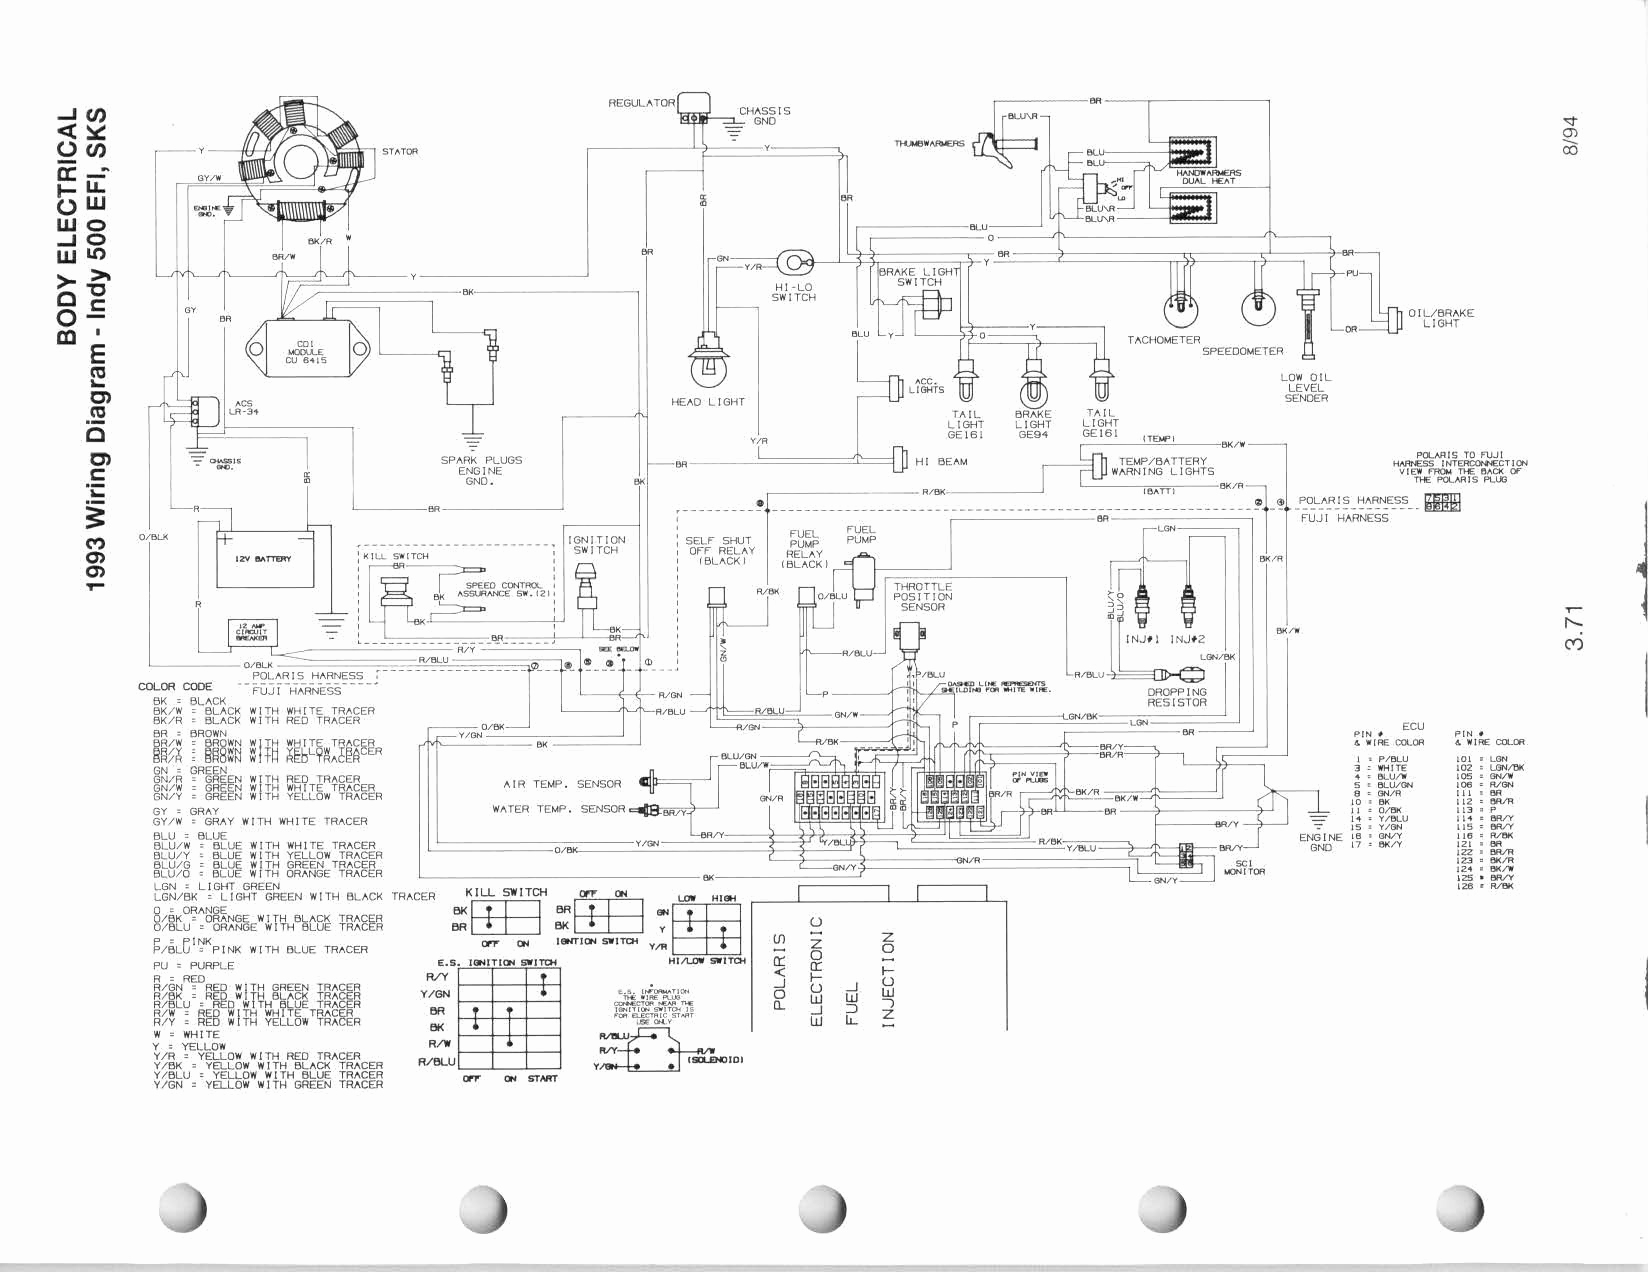 polaris ranger wiring diagram | free wiring diagram polaris ranger wiring schematic 2000 polaris ranger wiring diagram